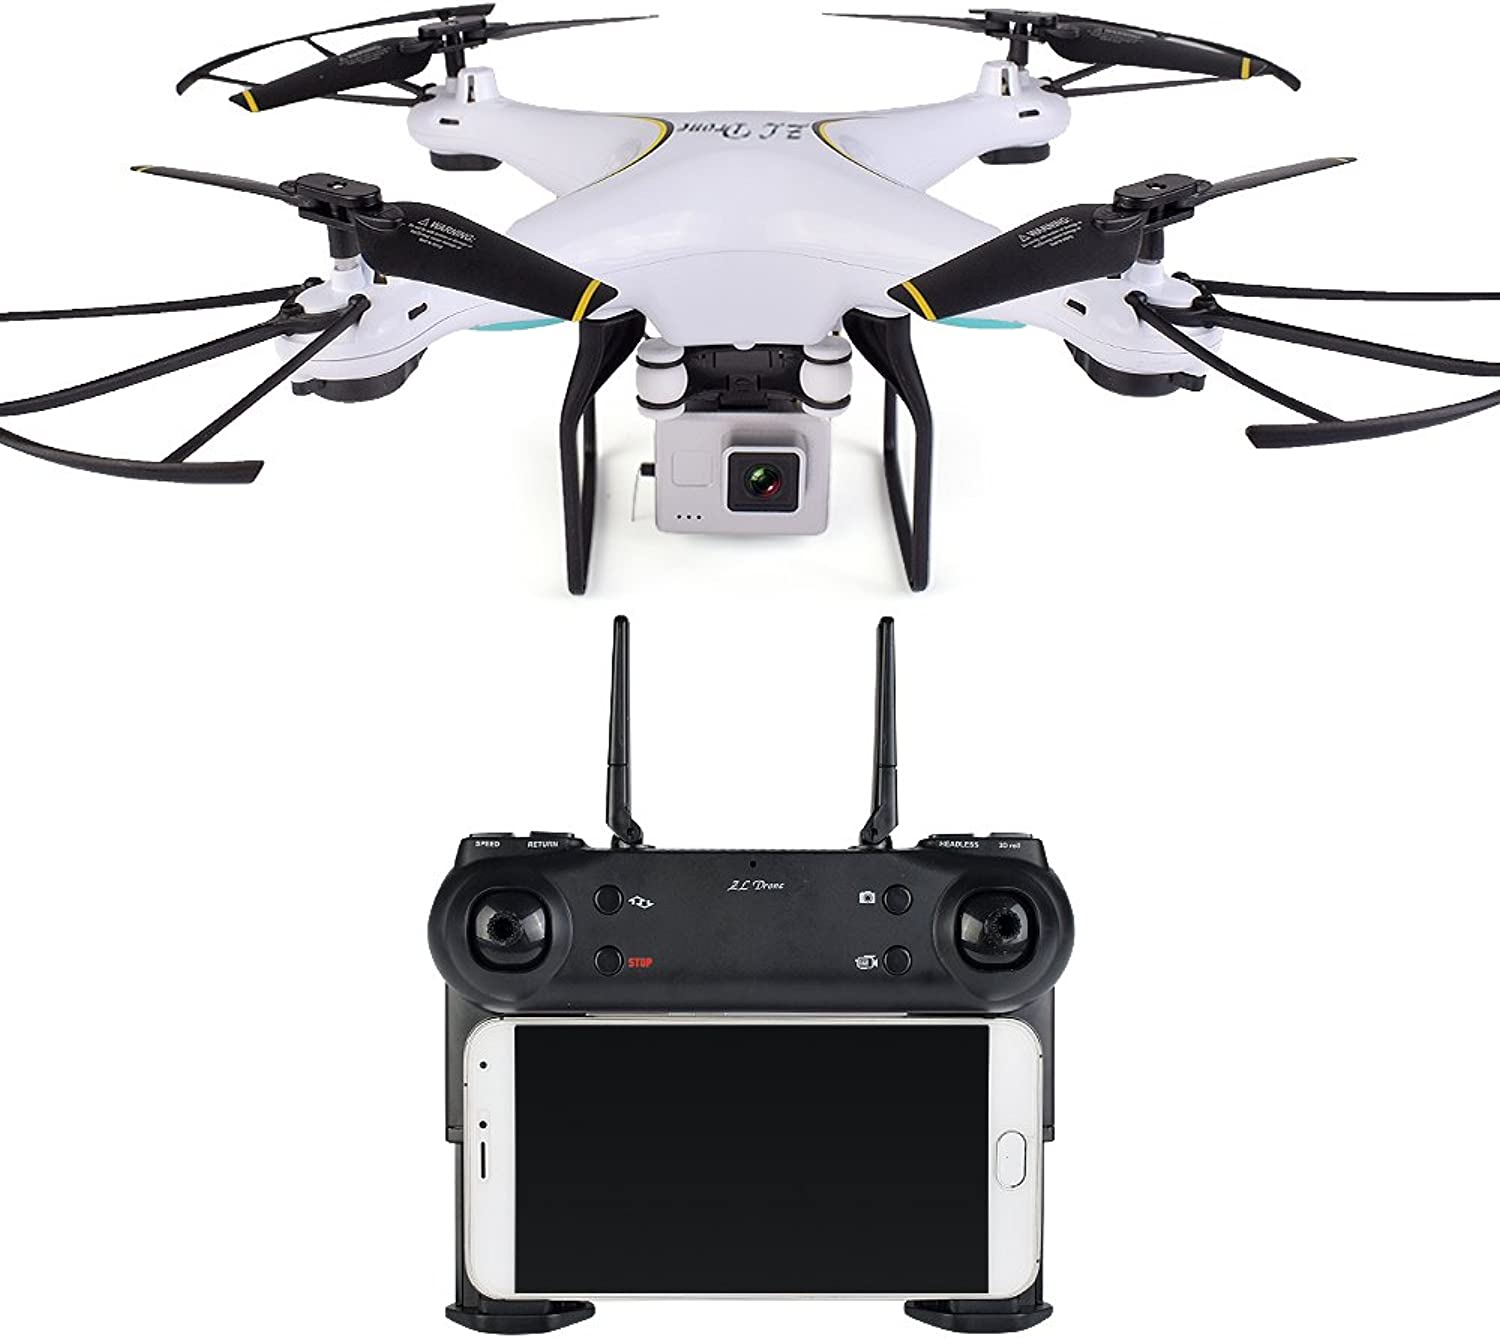 BGNing SG600 RC Drone with 2MP Wide Angle Camera Wifi FPV Quadcopter Auto Return Altitude Hold Headless Mode RC Helicopter